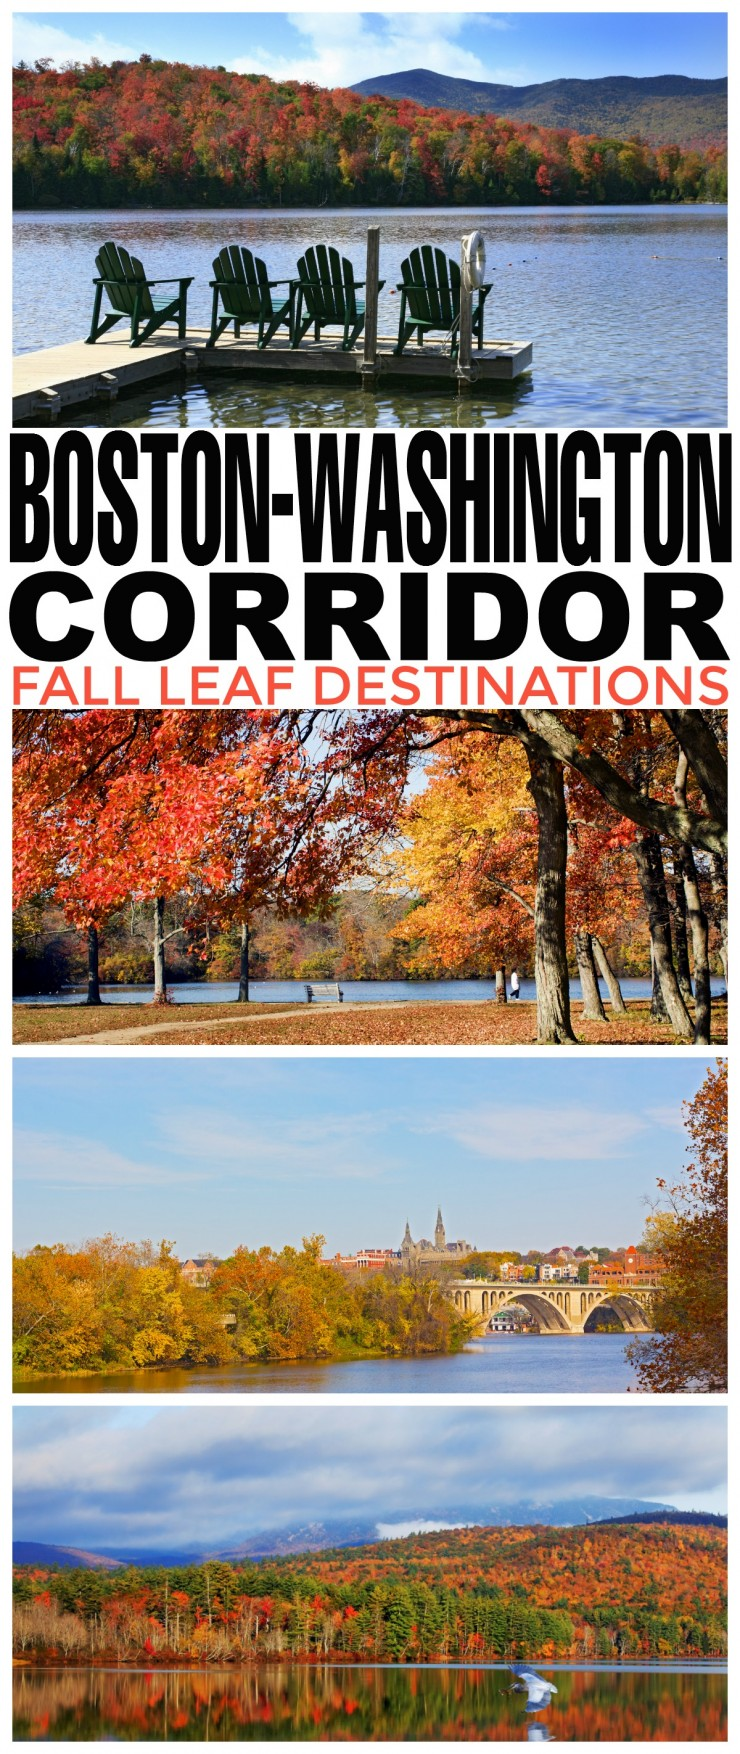 Fall Leaf Destinations in the Boston-Washington Corridor - Autumn is a great time for a family road trip down the American East Coast to take in some fabulous views as you travel between 3 great cities.